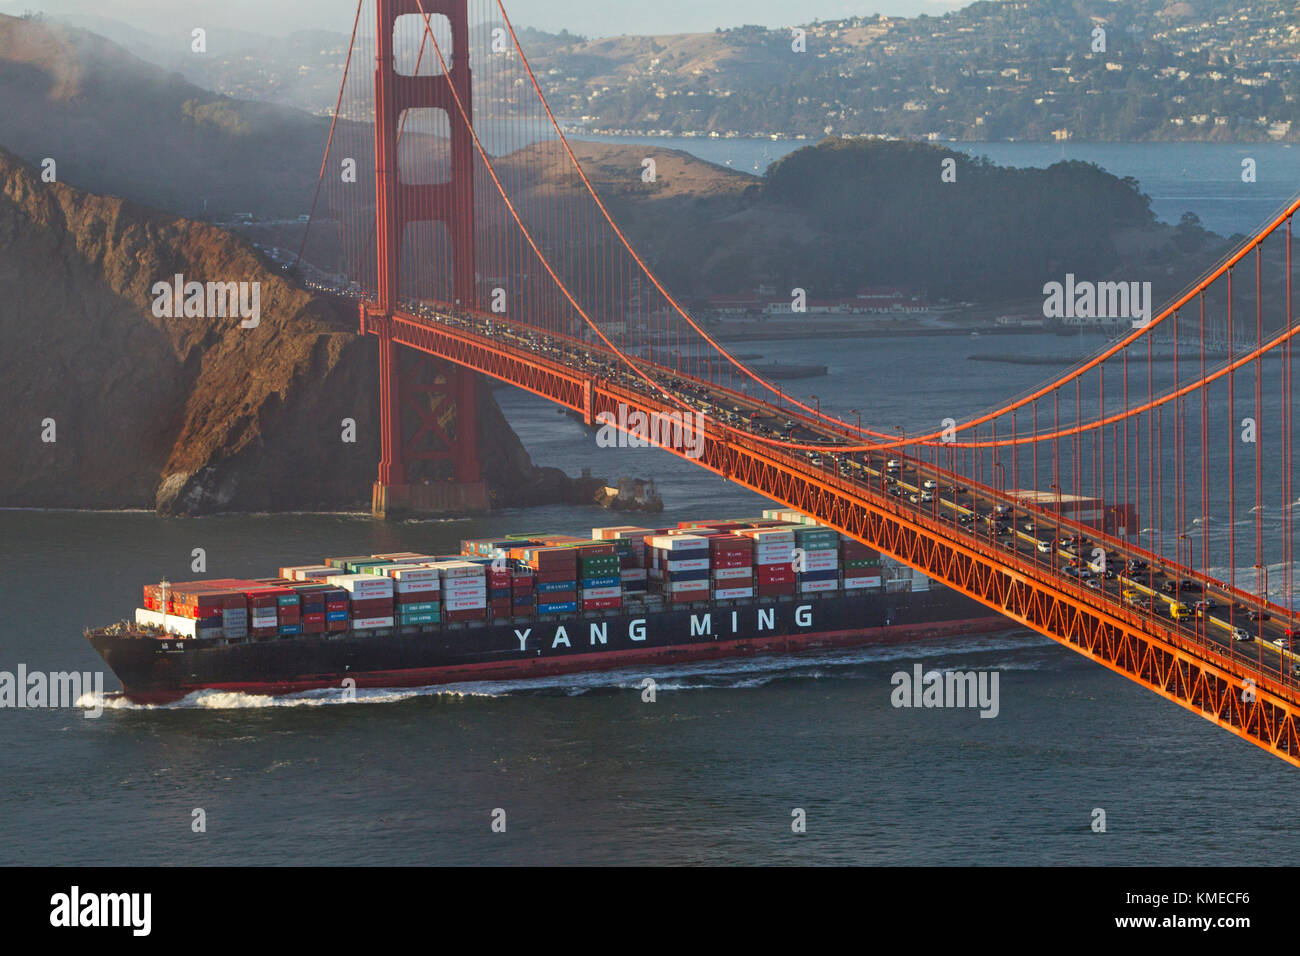 Freighter sailing under Golden Gate Bridge in San Francisco Bay, San Francisco, California, USA - Stock Image